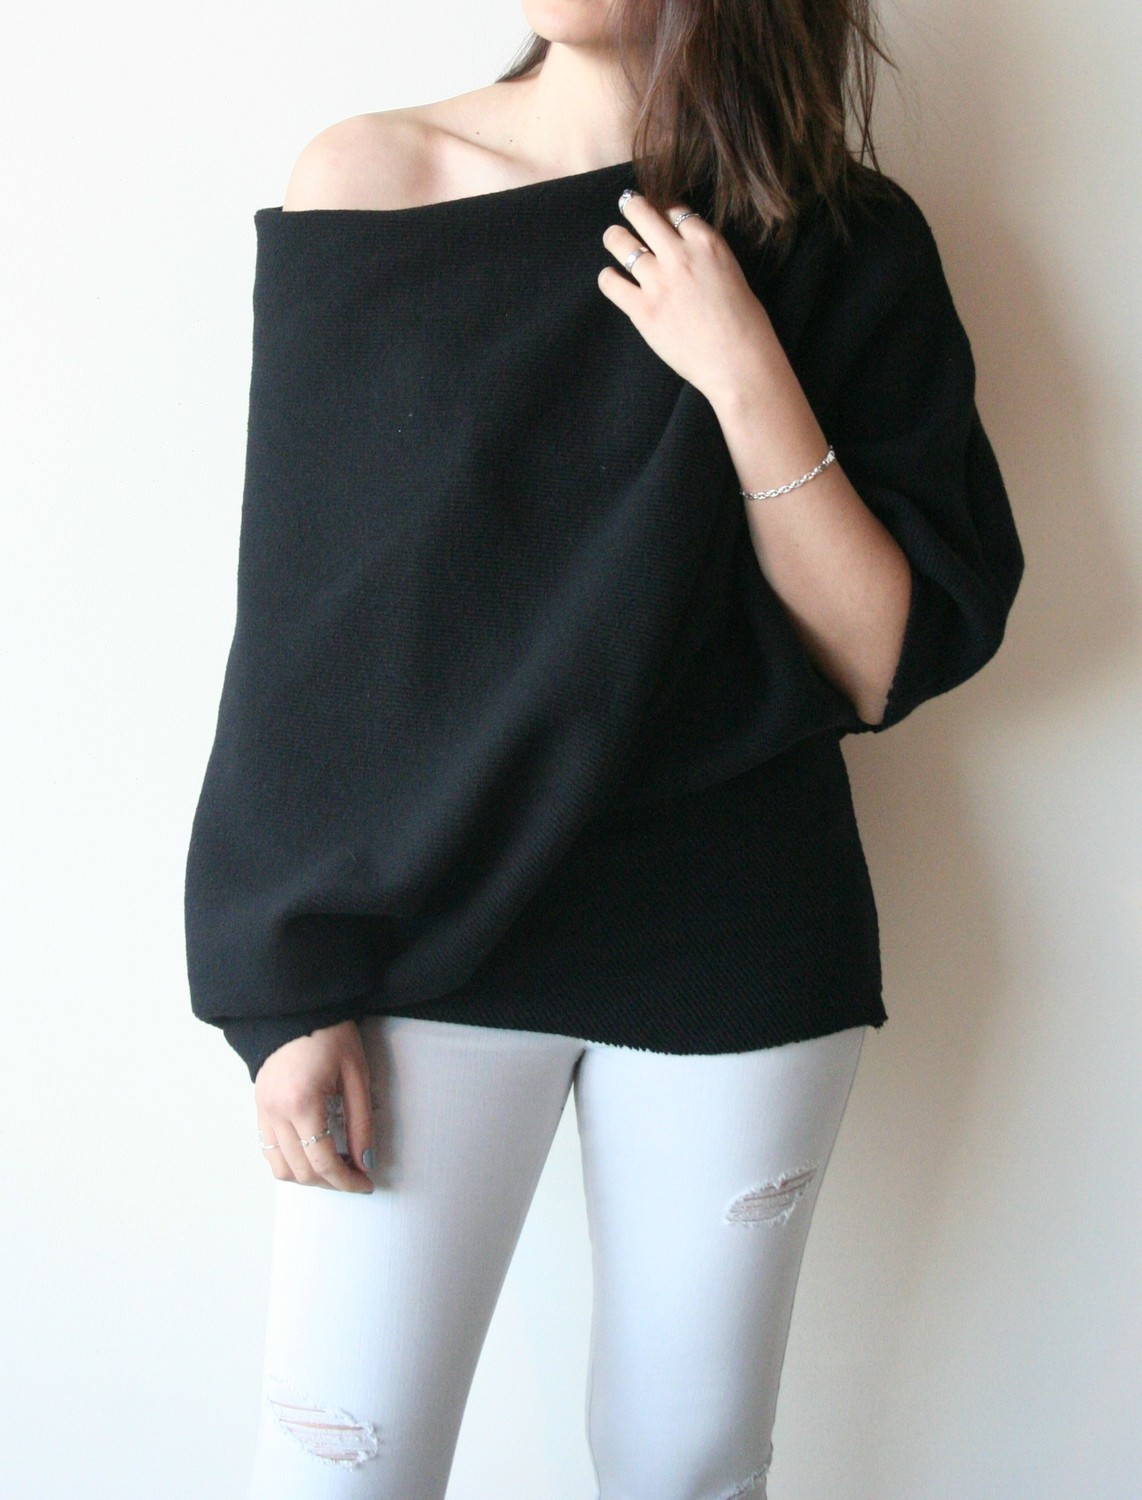 LA GERTA BLACK KNIT TOP